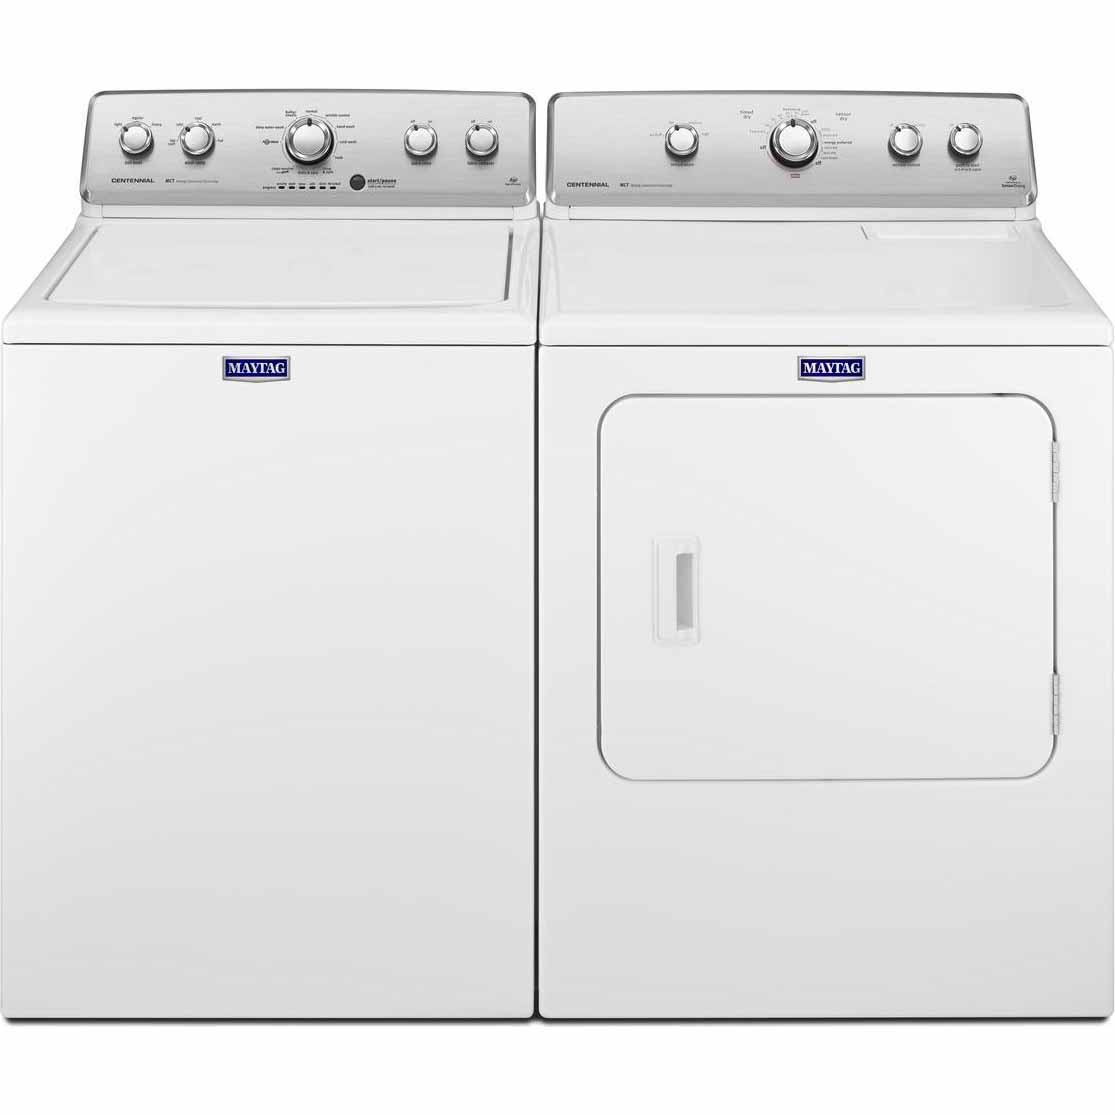 Maytag MEDC555DW 7.0 cu. ft. Centennial® Electric Dryer - White